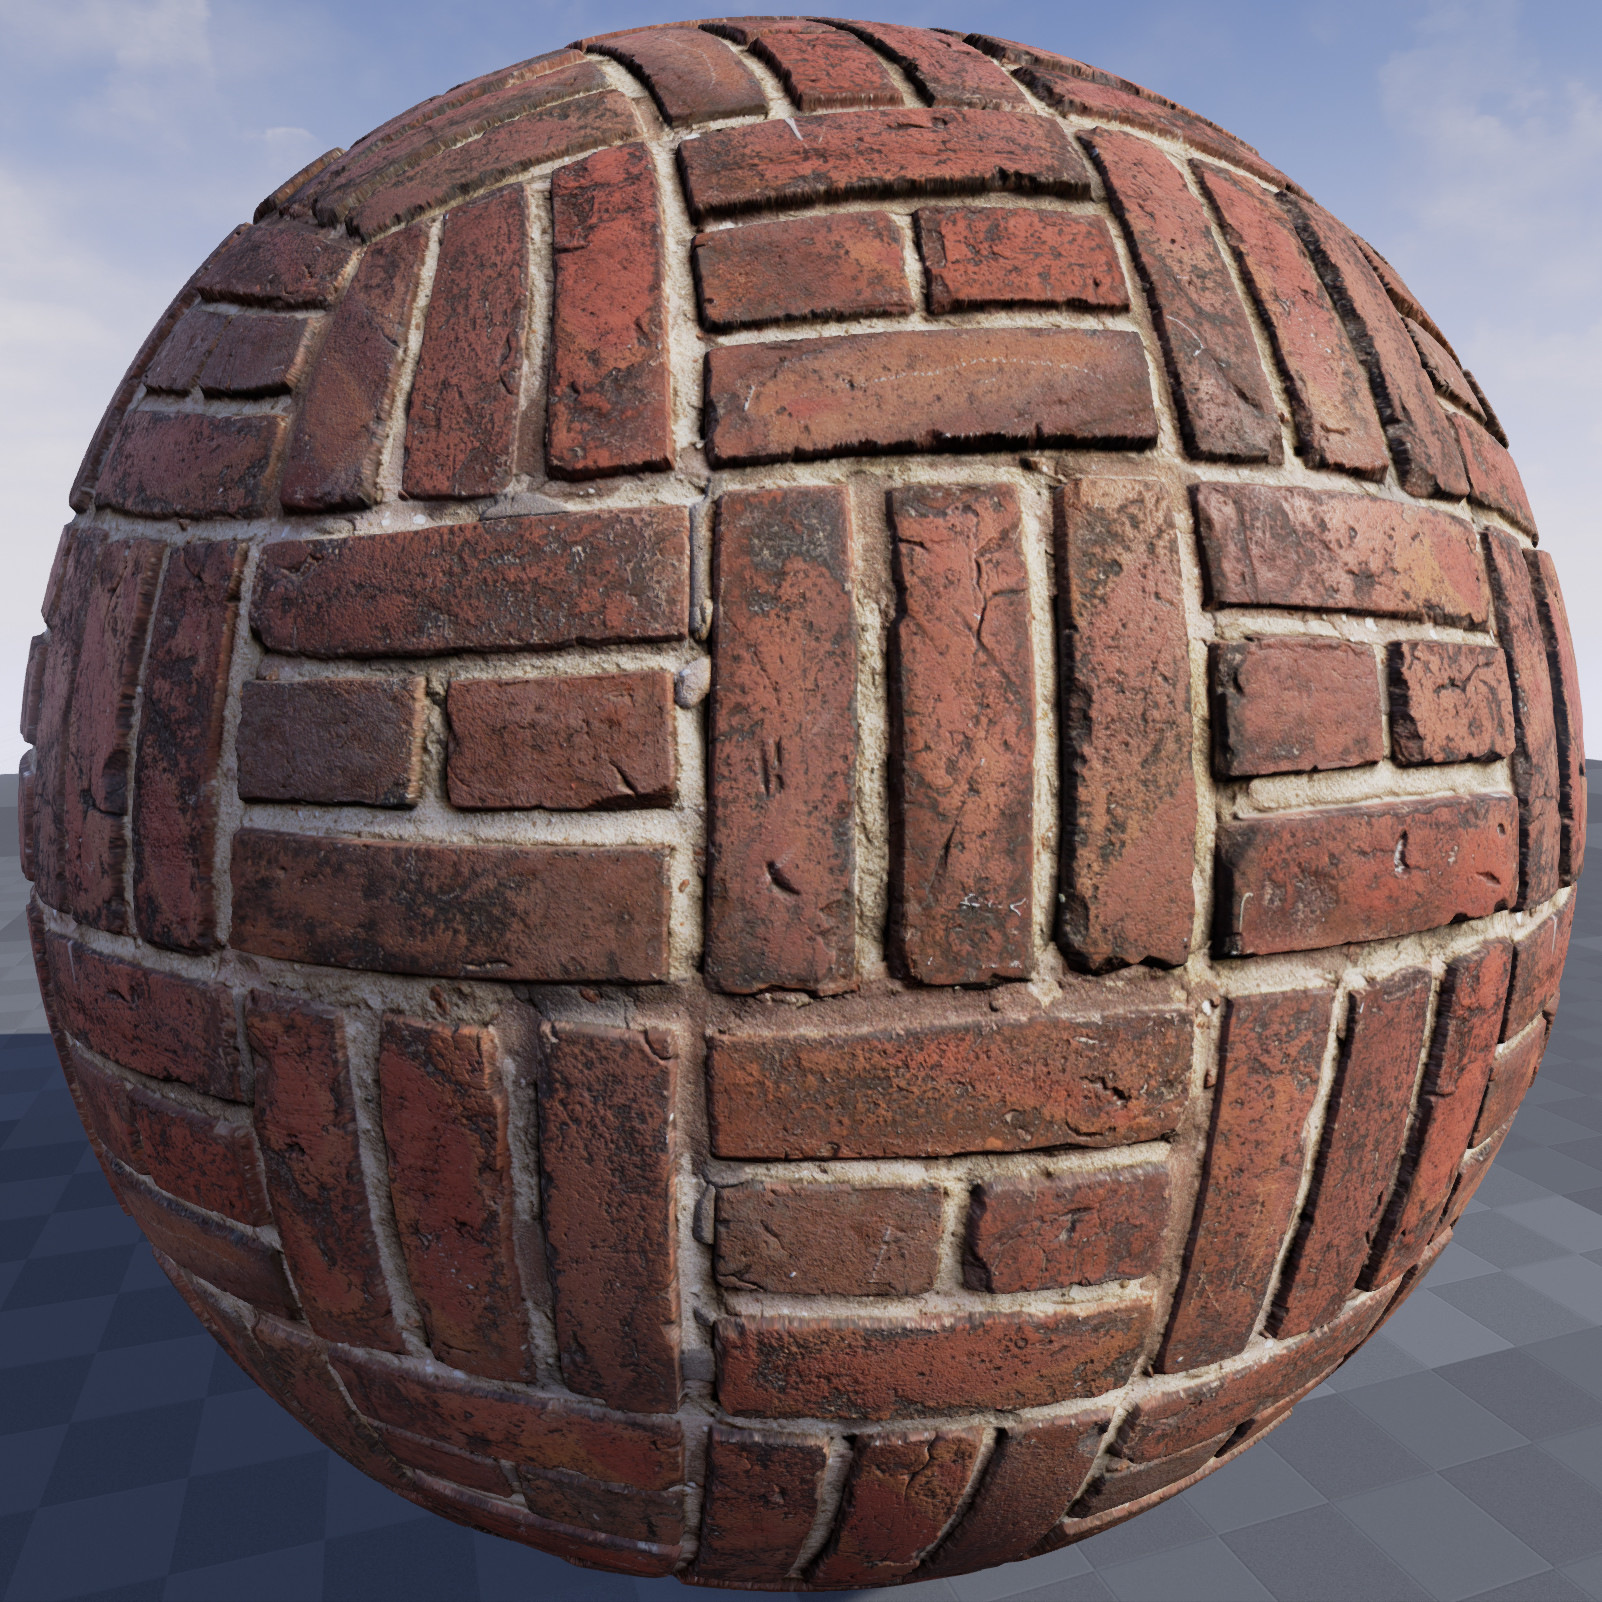 ArtStation - Texture of brick wall in Unreal Engine 4 9